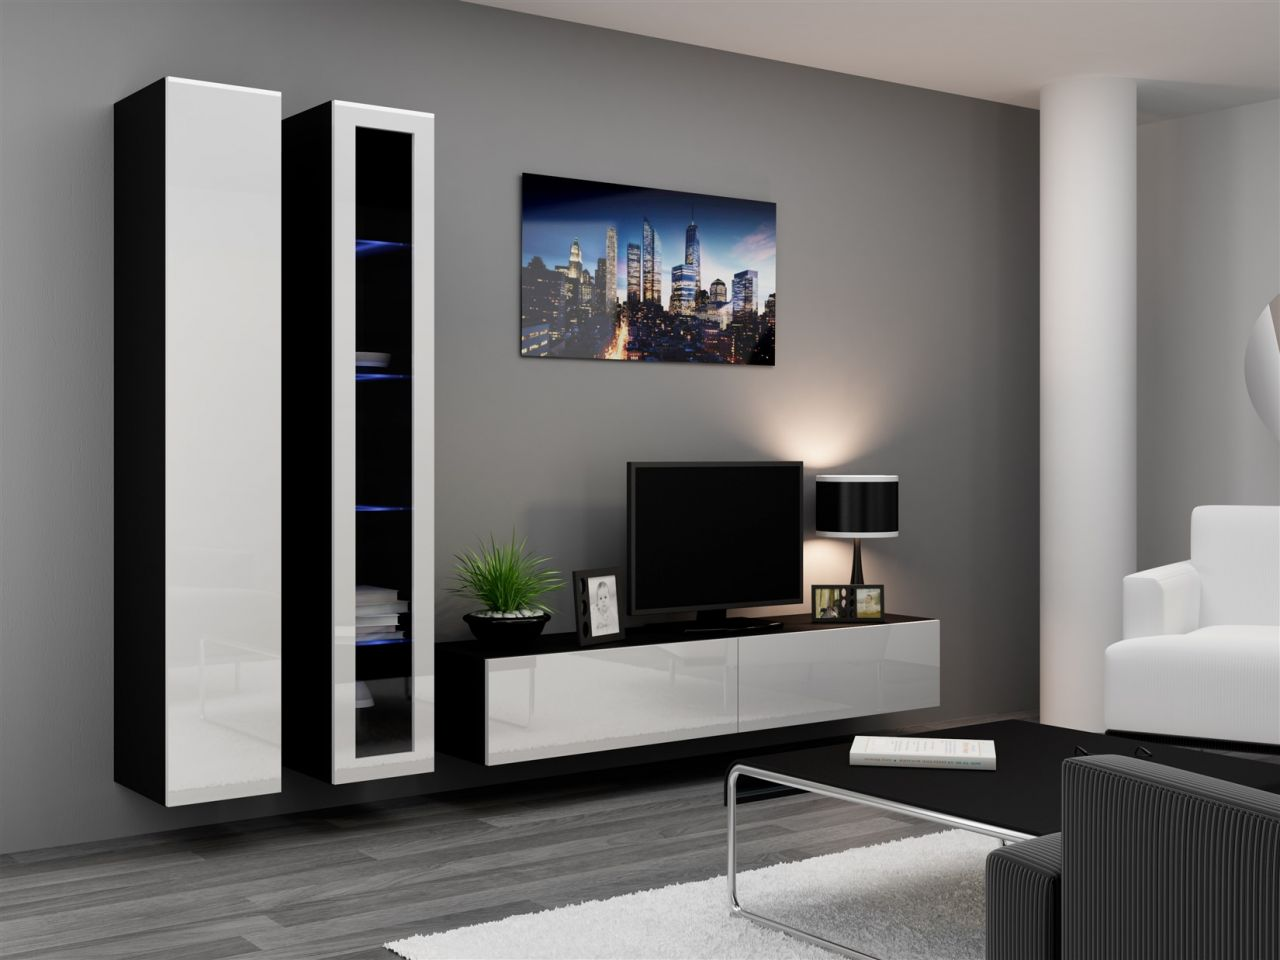 mediawand wohnwand 3 tlg sentic 15 schwarz weiss. Black Bedroom Furniture Sets. Home Design Ideas